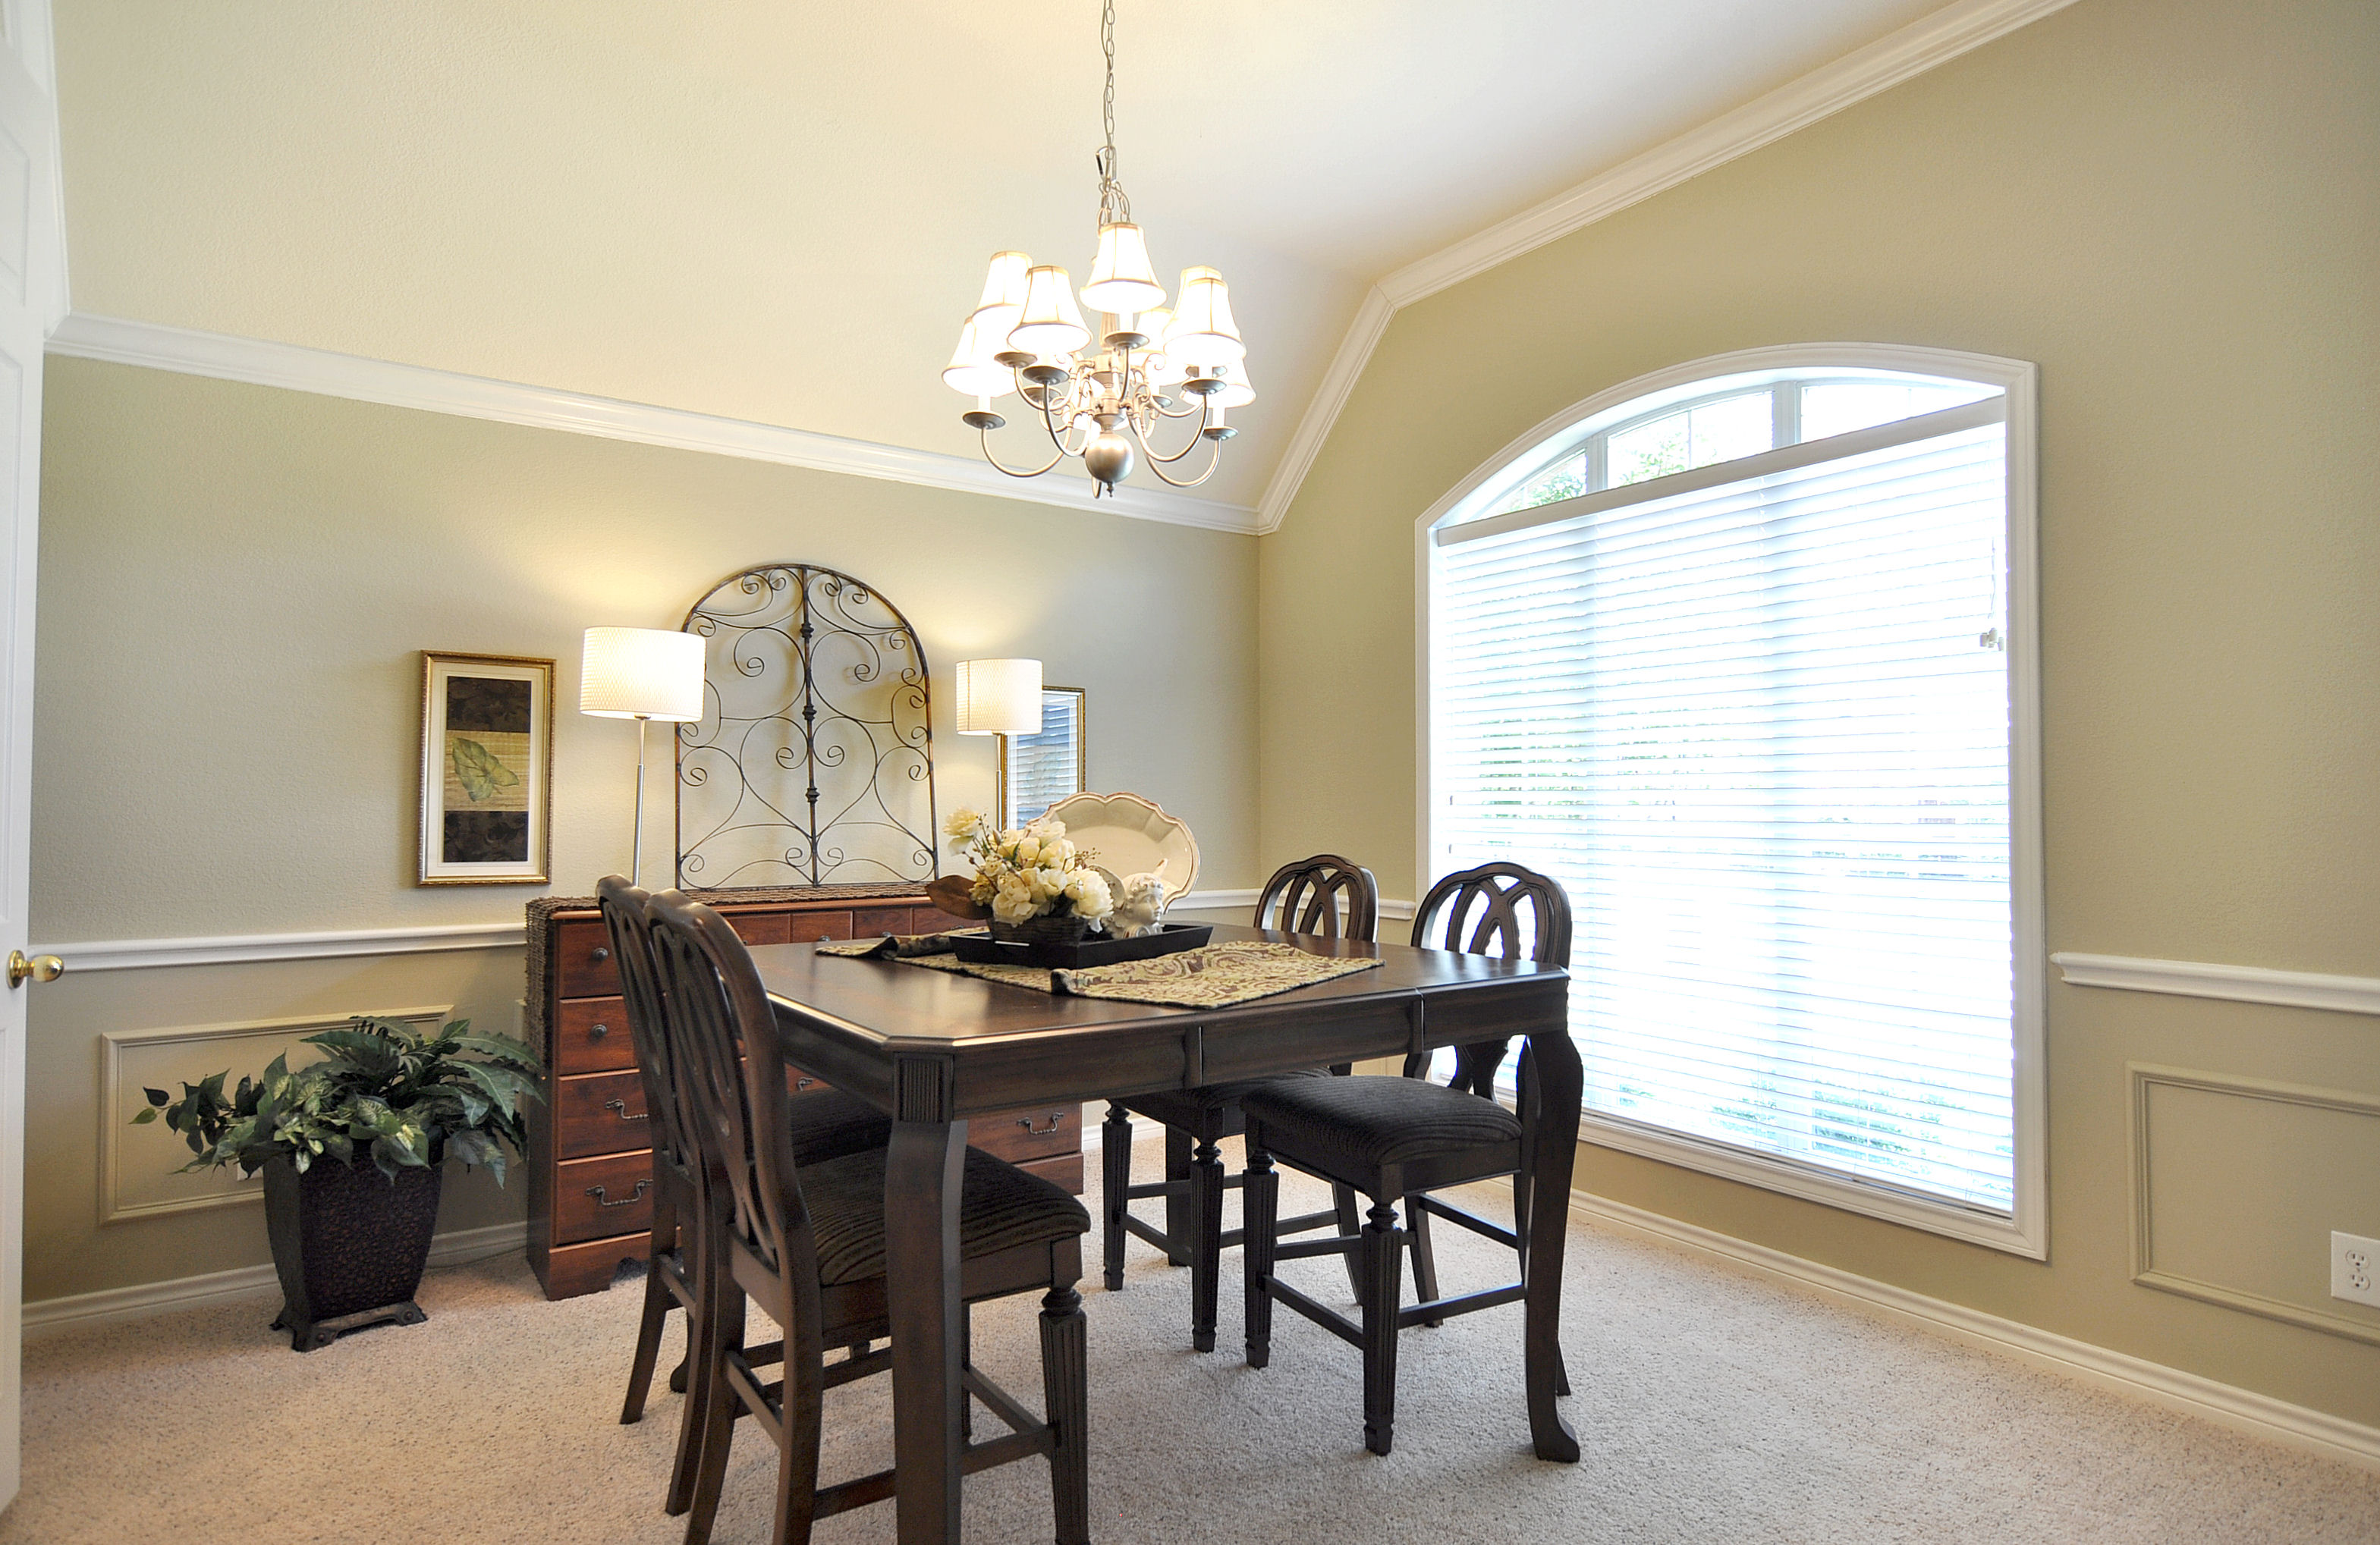 Home Star Staging Staged Then Re-Staged: A Dining Room's